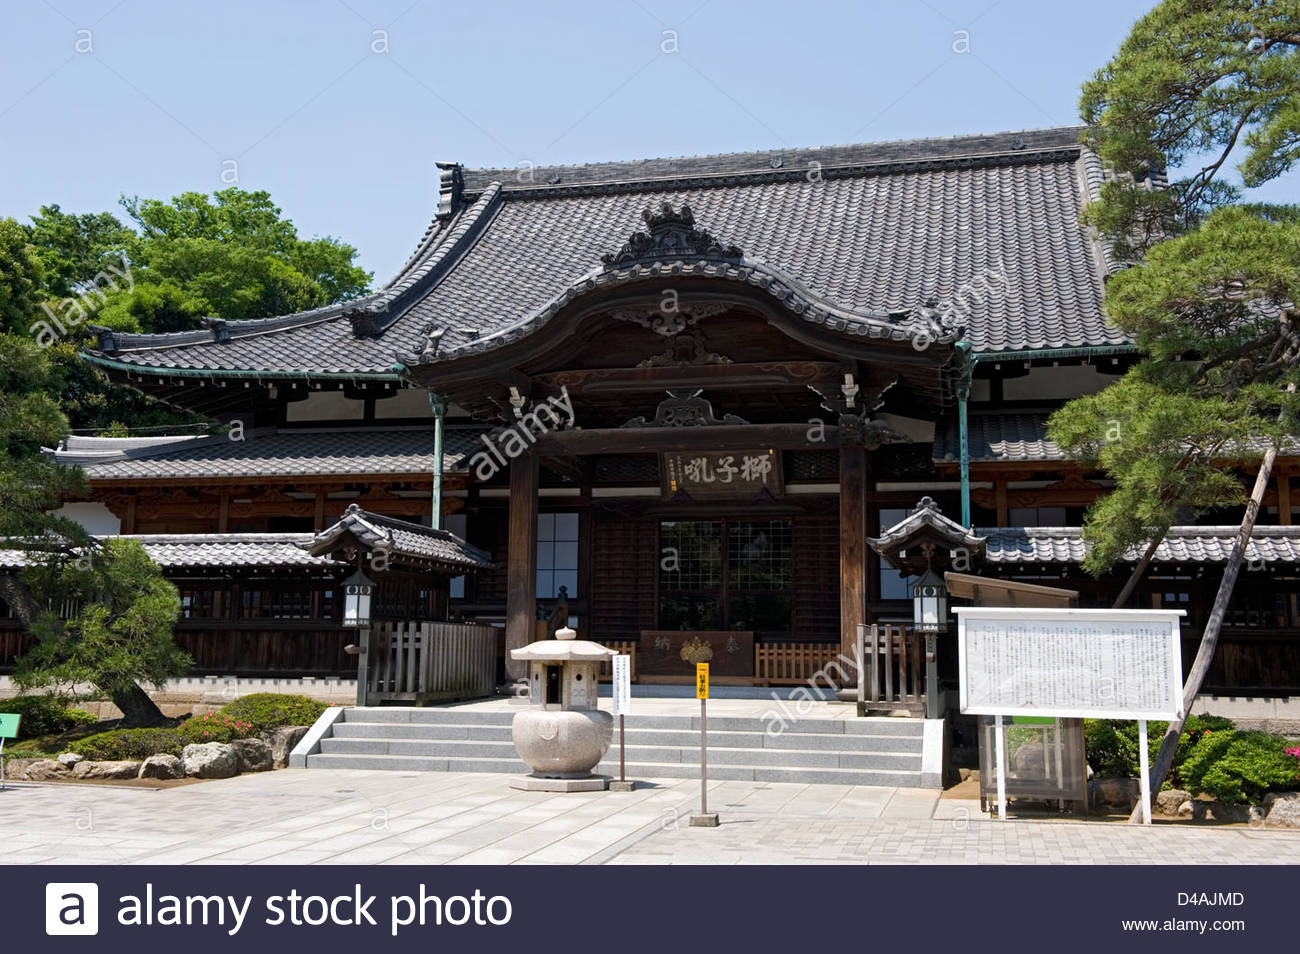 St Mary's Cathedral Tokyo Tokyo, Main hall of Sengakuji Temple where famous 47 Ronin samurai are ...